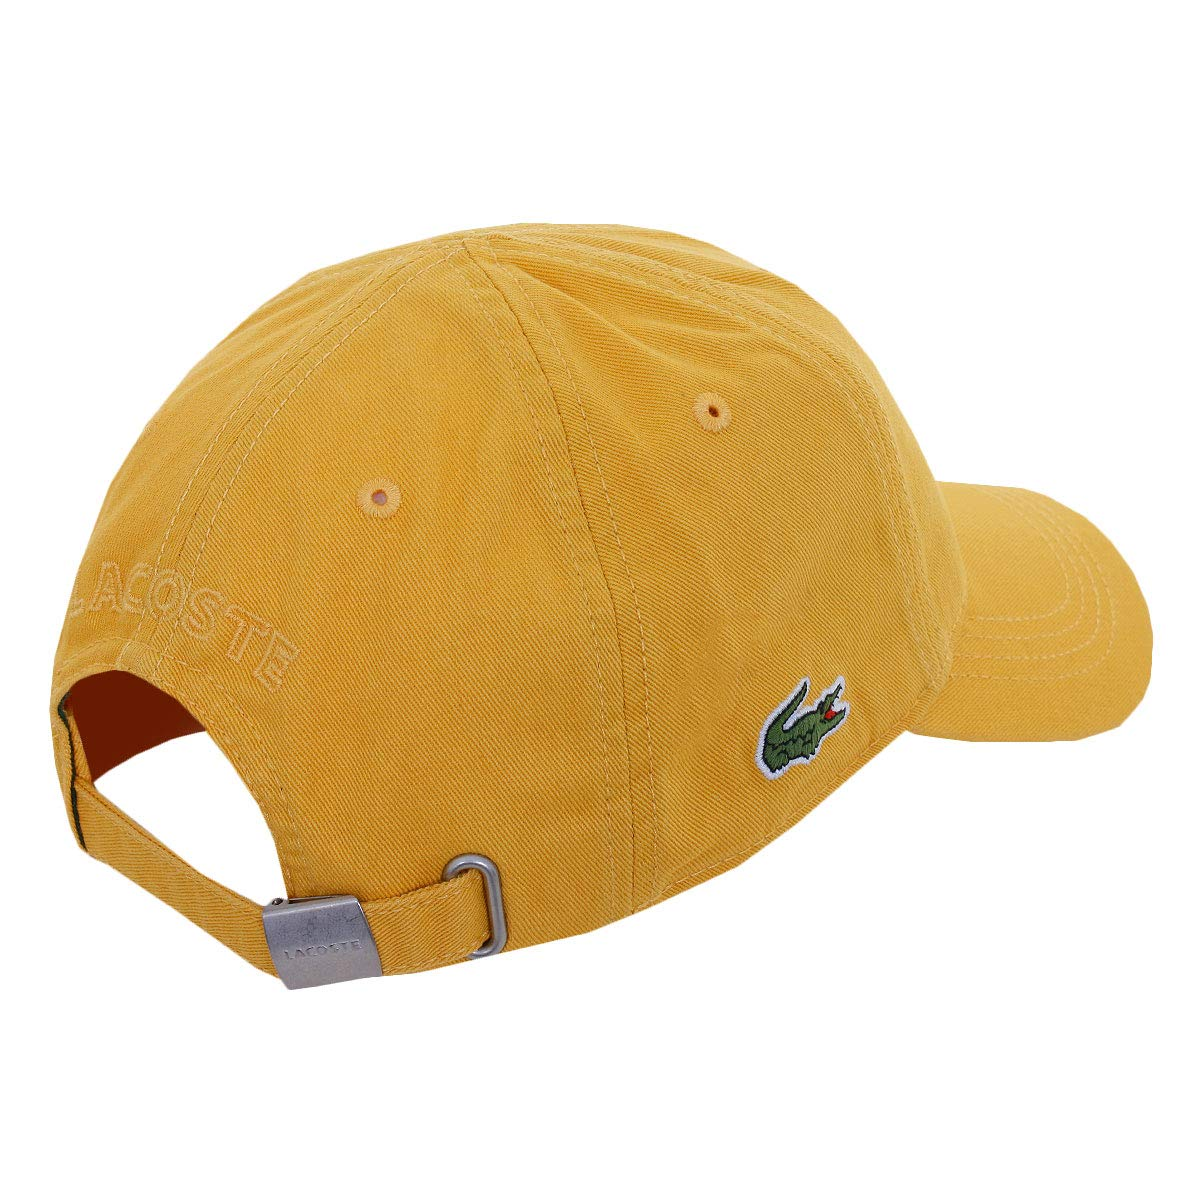 43976cefa75 Lacoste Men s RK9811-00 Plain Baseball Cap  Amazon.co.uk  Clothing